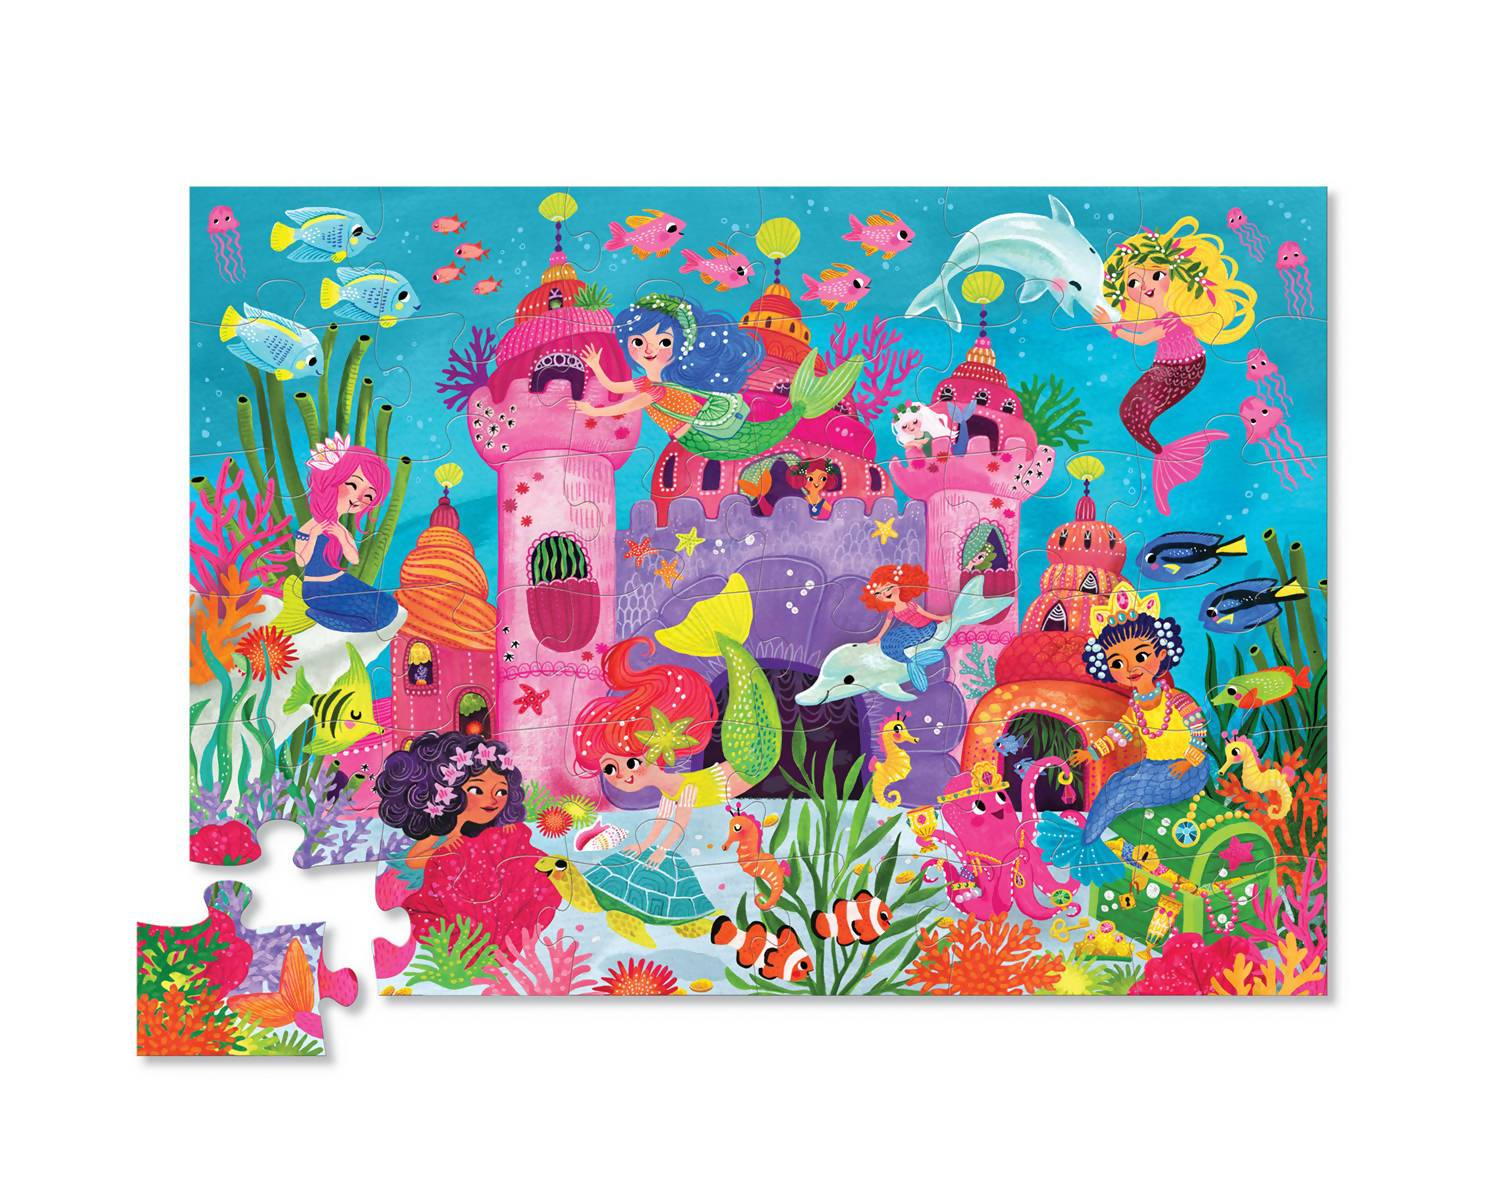 36-pc Puzzle - Mermaid Palace - Kids Puzzles - The Children's Showcase - Naiise